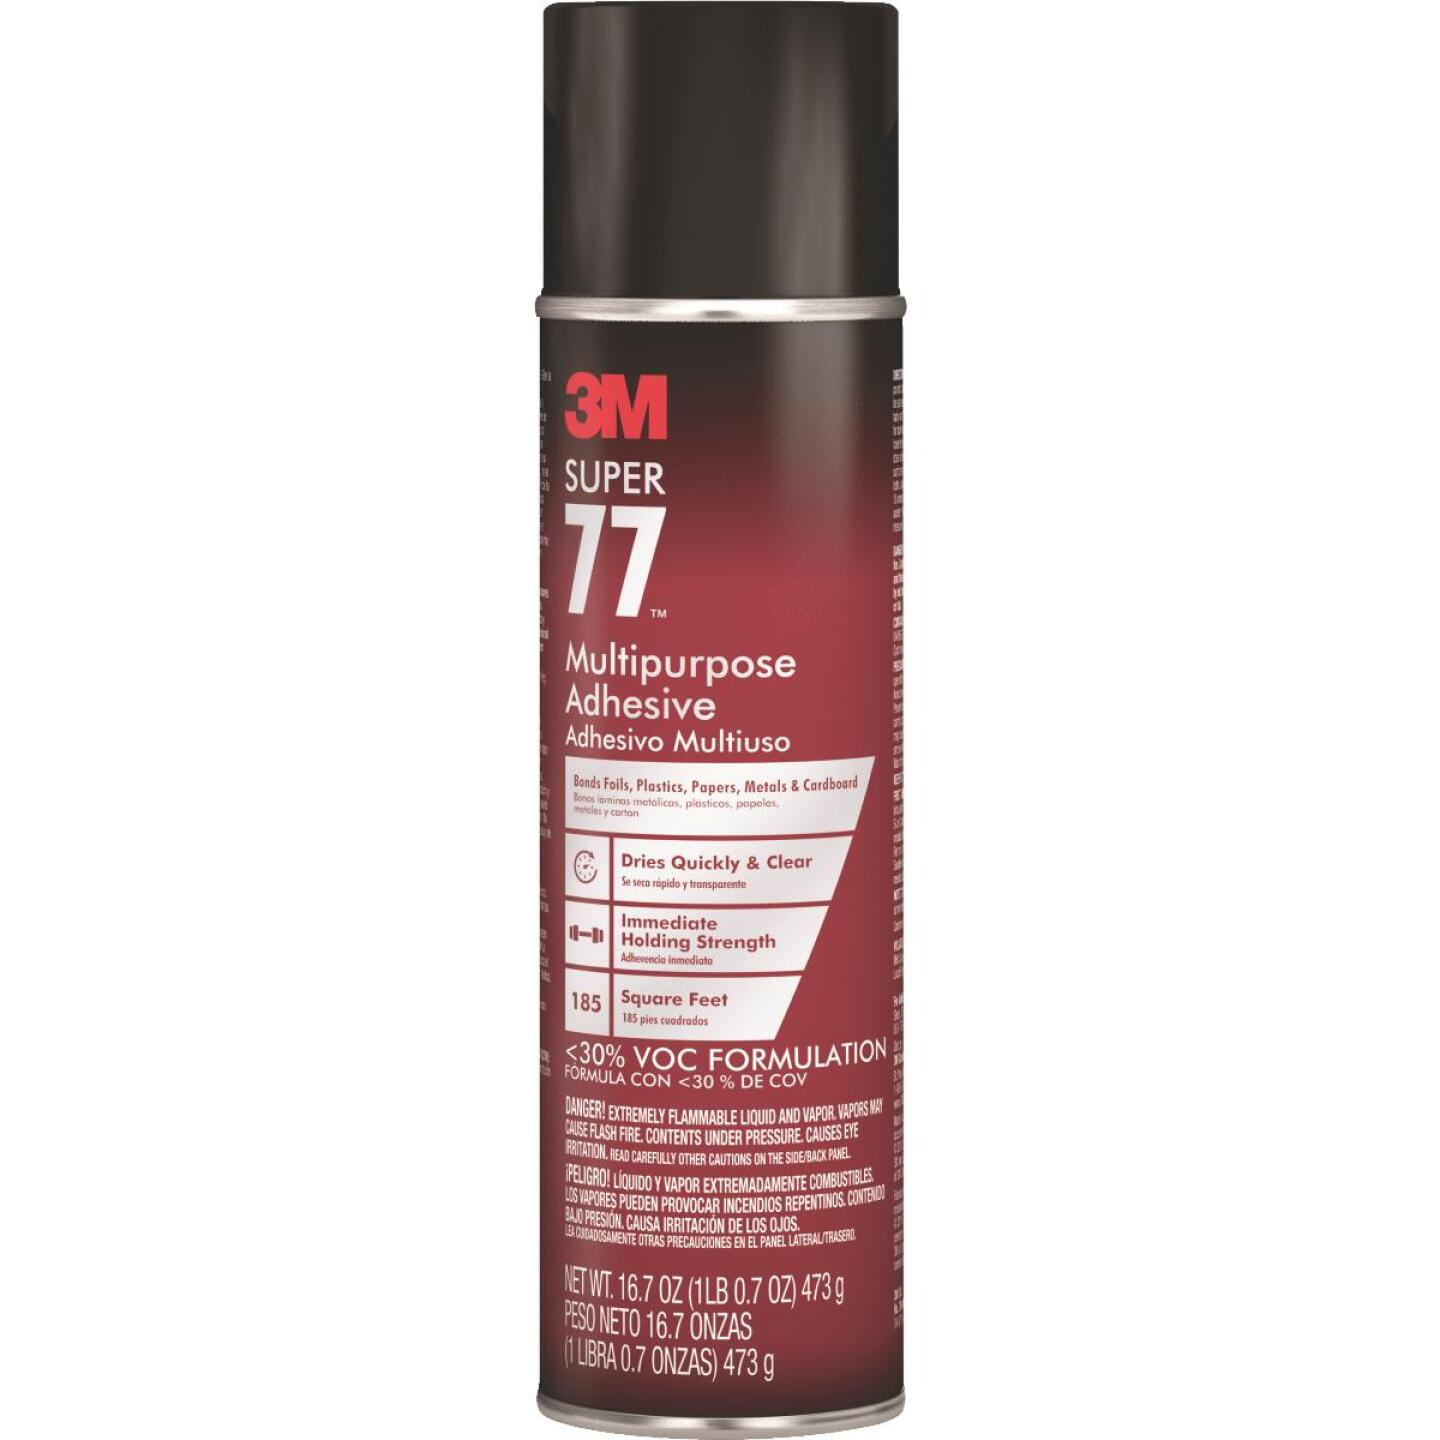 3M Super 77 16.7 Oz. Multi-Purpose Spray Adhesive (California Compliant) Image 1